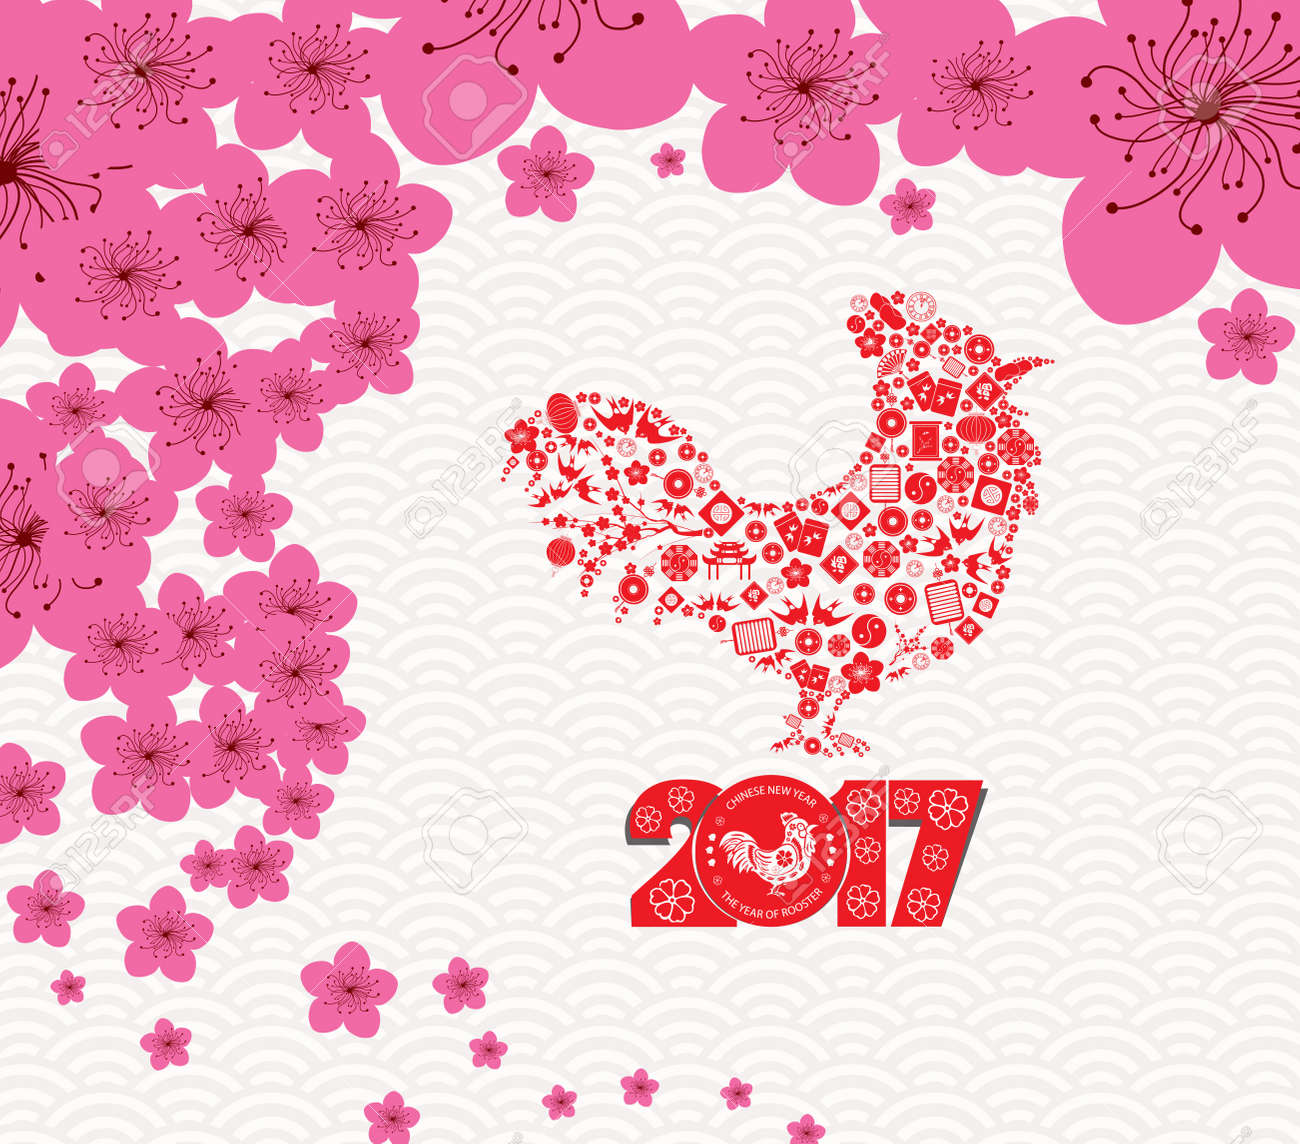 https://i1.wp.com/previews.123rf.com/images/acucucu/acucucu1606/acucucu160600343/59162213-Chinese-New-Year-2017-Plum-blossom-and-rooster-background--Stock-Vector.jpg